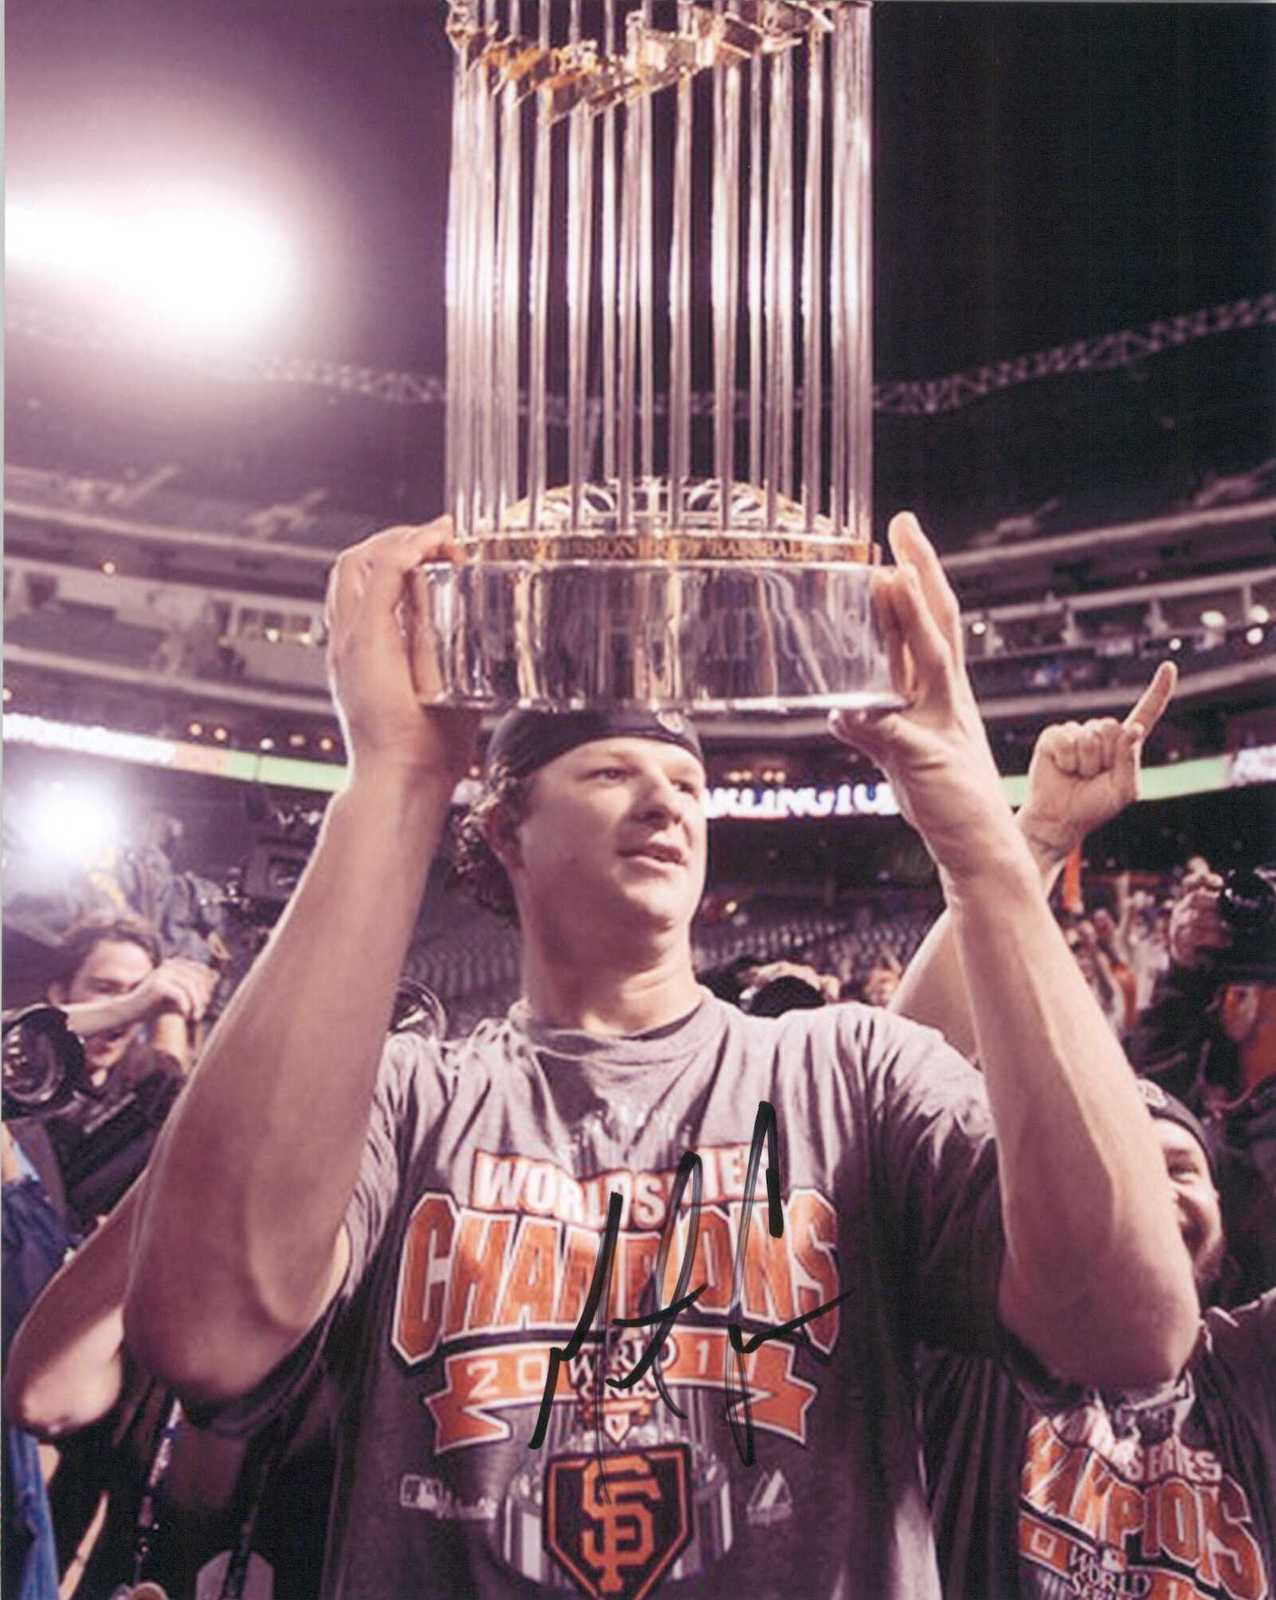 Primary image for Matt Cain Signed Autographed Glossy 8x10 Photo - San Francisco Giants